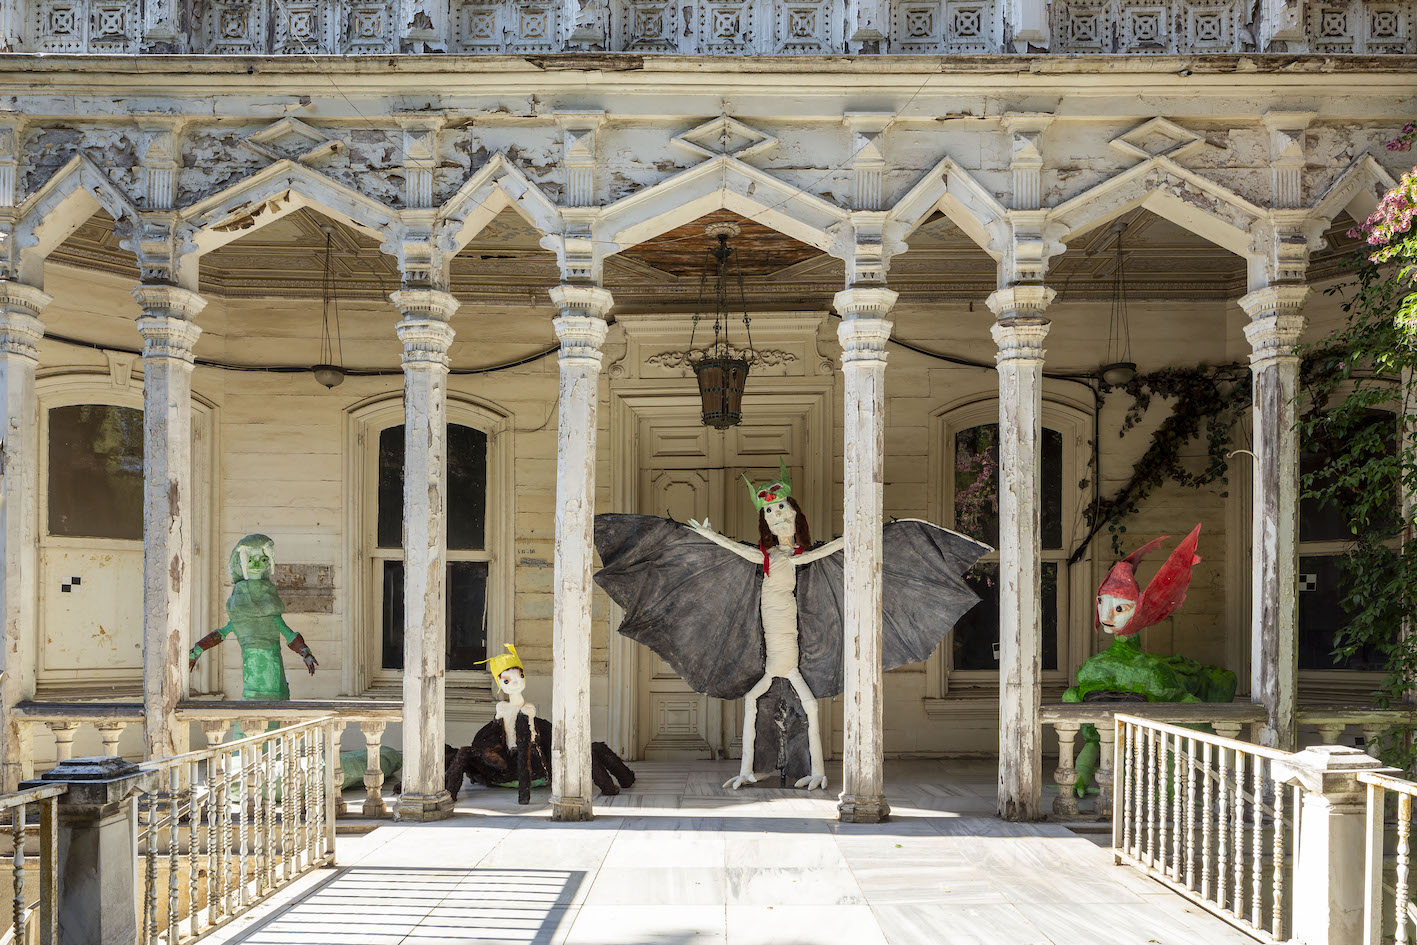 Monster Chetwynd, The Gorgon's Playground, 2019 Sculptural installation 282 × 600 × 345 cm Courtesy the artist and Sadie Coles HQ, London. Commissioned by the 16th Istanbul Biennial. Produced and presented with the support of Koç Holding. Ph. Sahir Ugur Eren